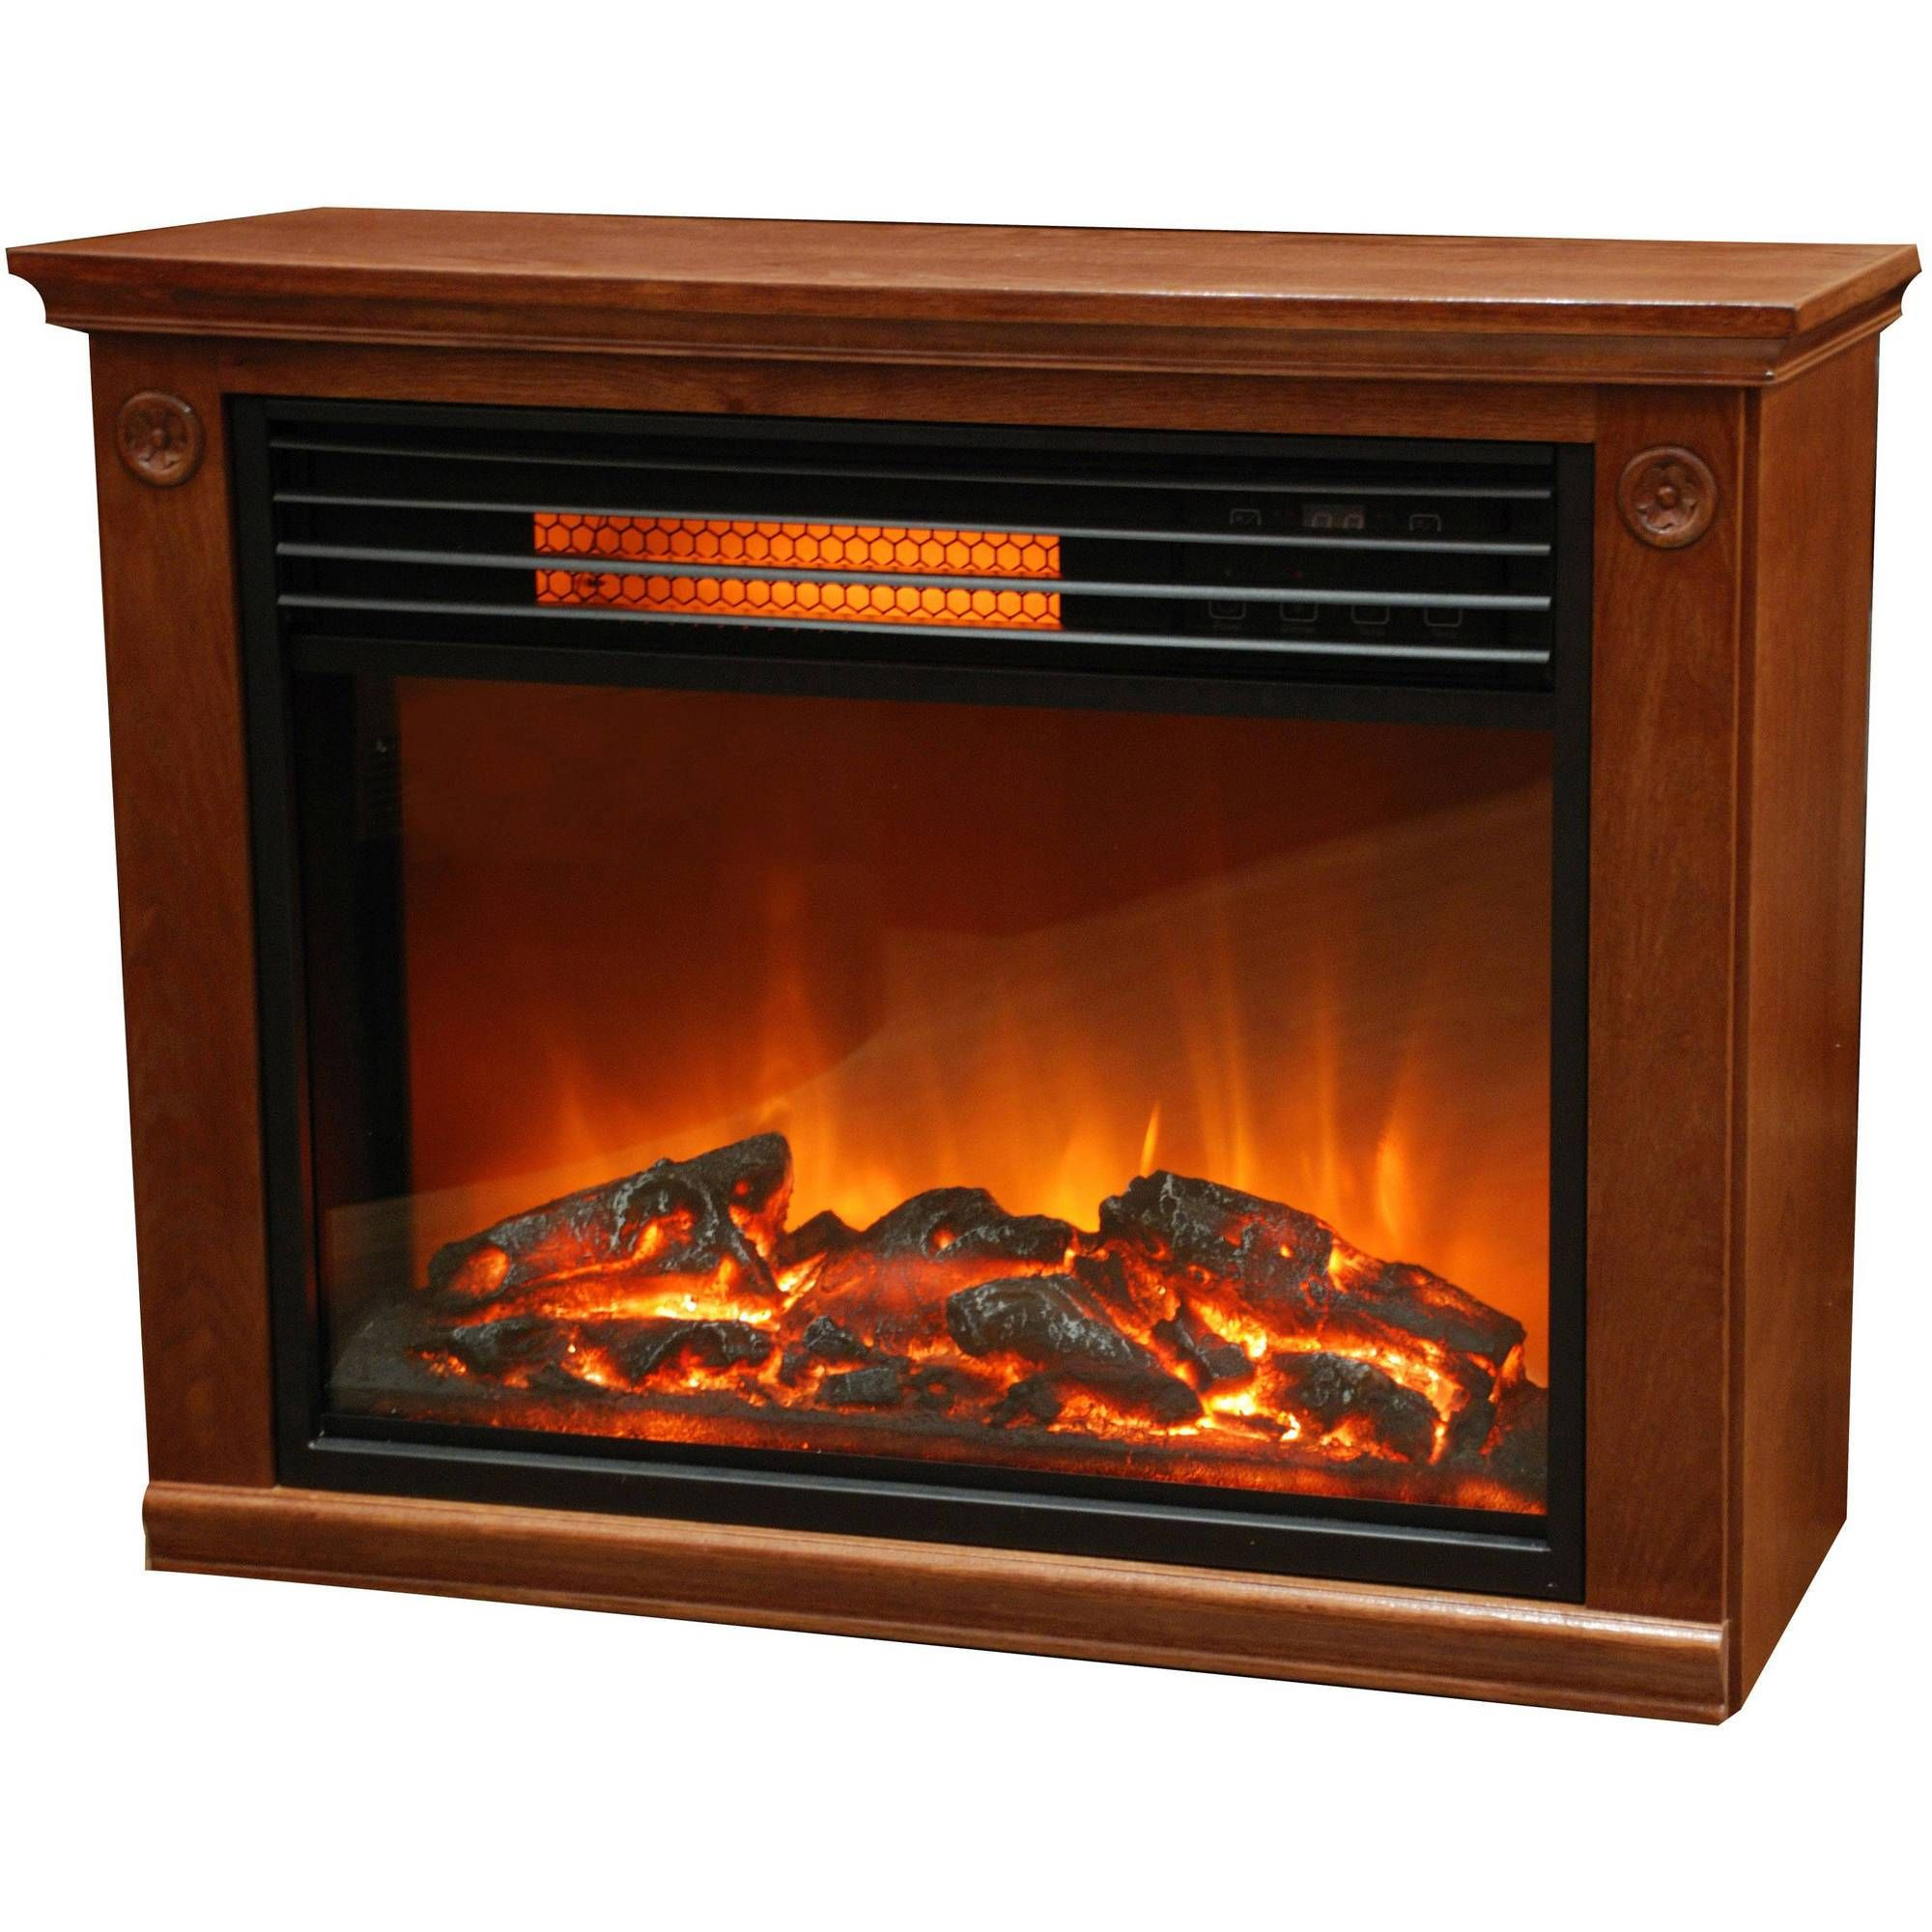 lifezone electric infrared fireplace heater oak infrared